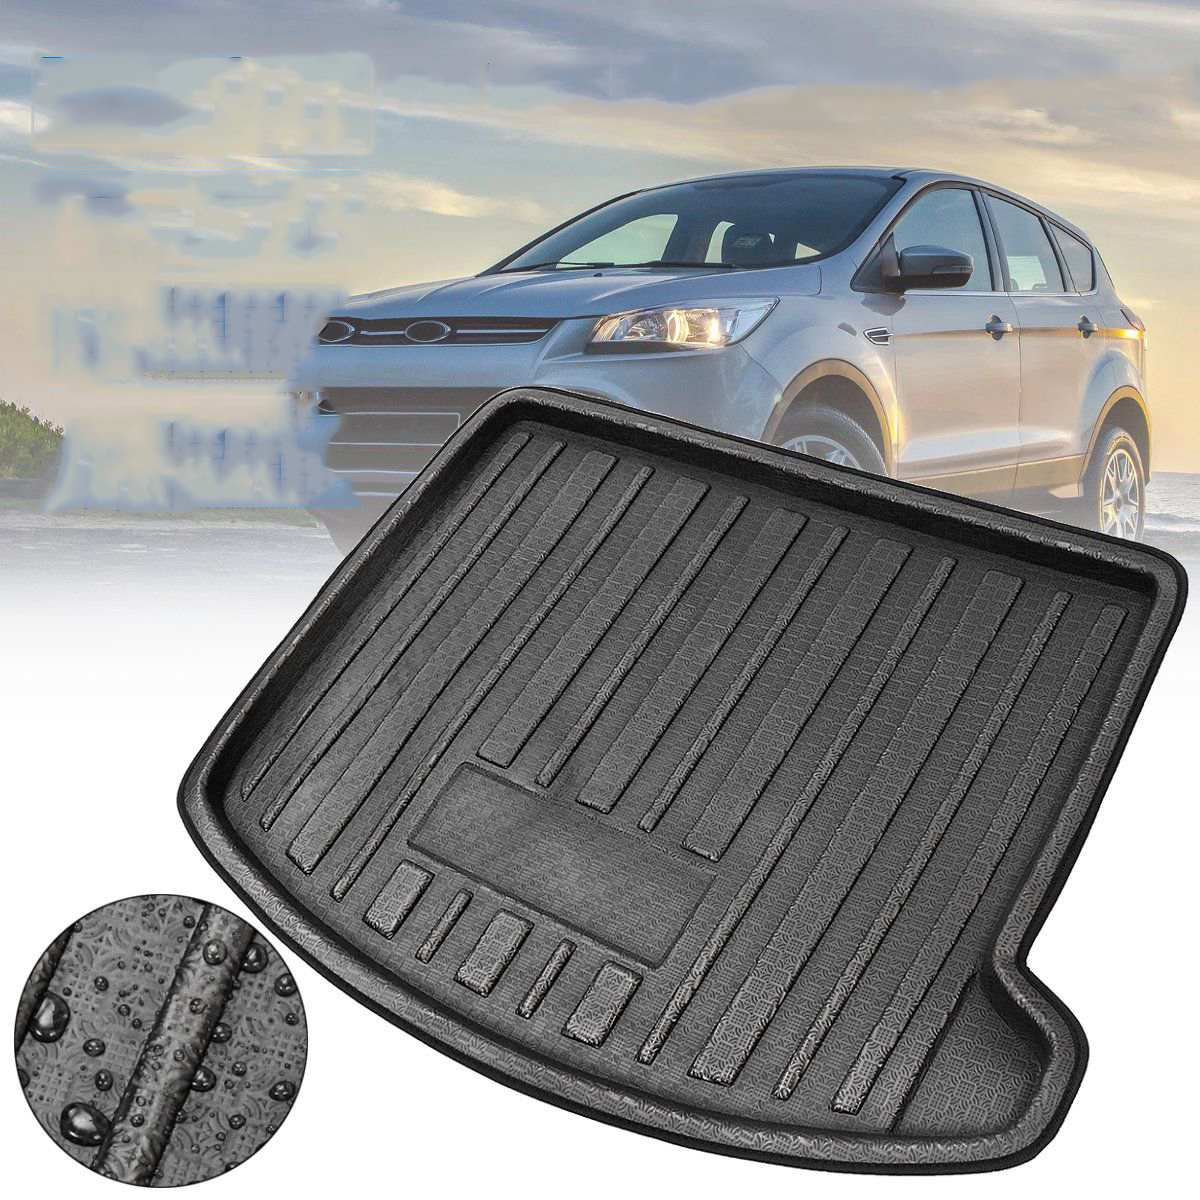 Boot Mat Rear Trunk Liner Cargo Floor Tray Carpet Mud Kick Protector Cover For Ford Escape Kuga 2013 2014 2015 2016 2017 2018